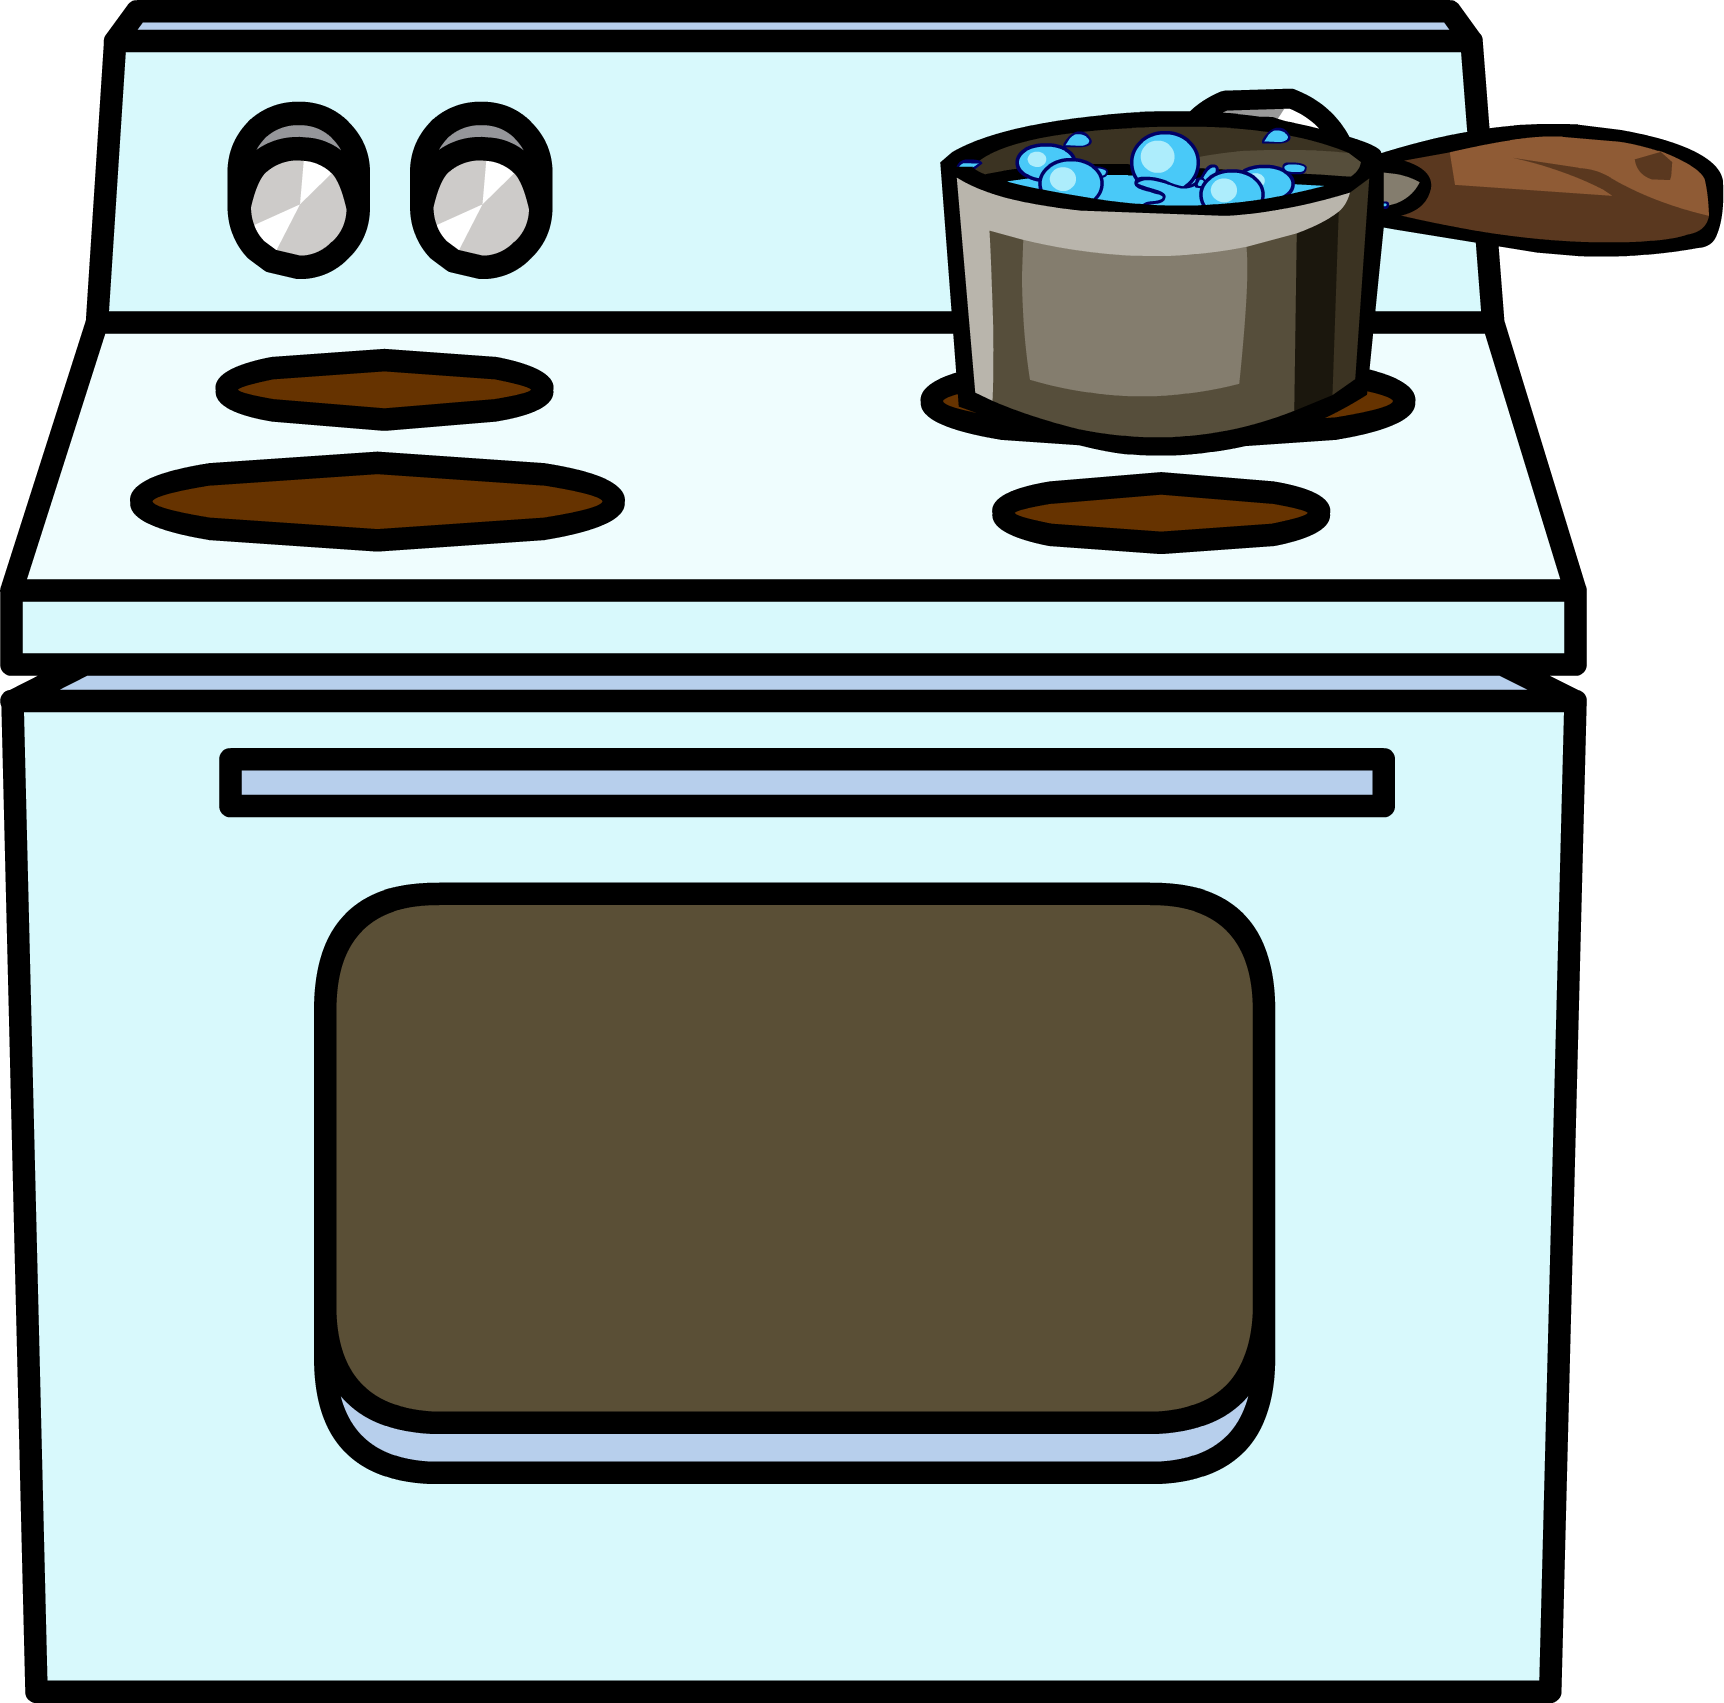 Cartoon Electric Cooker ~ Image electric stove sprite club penguin wiki